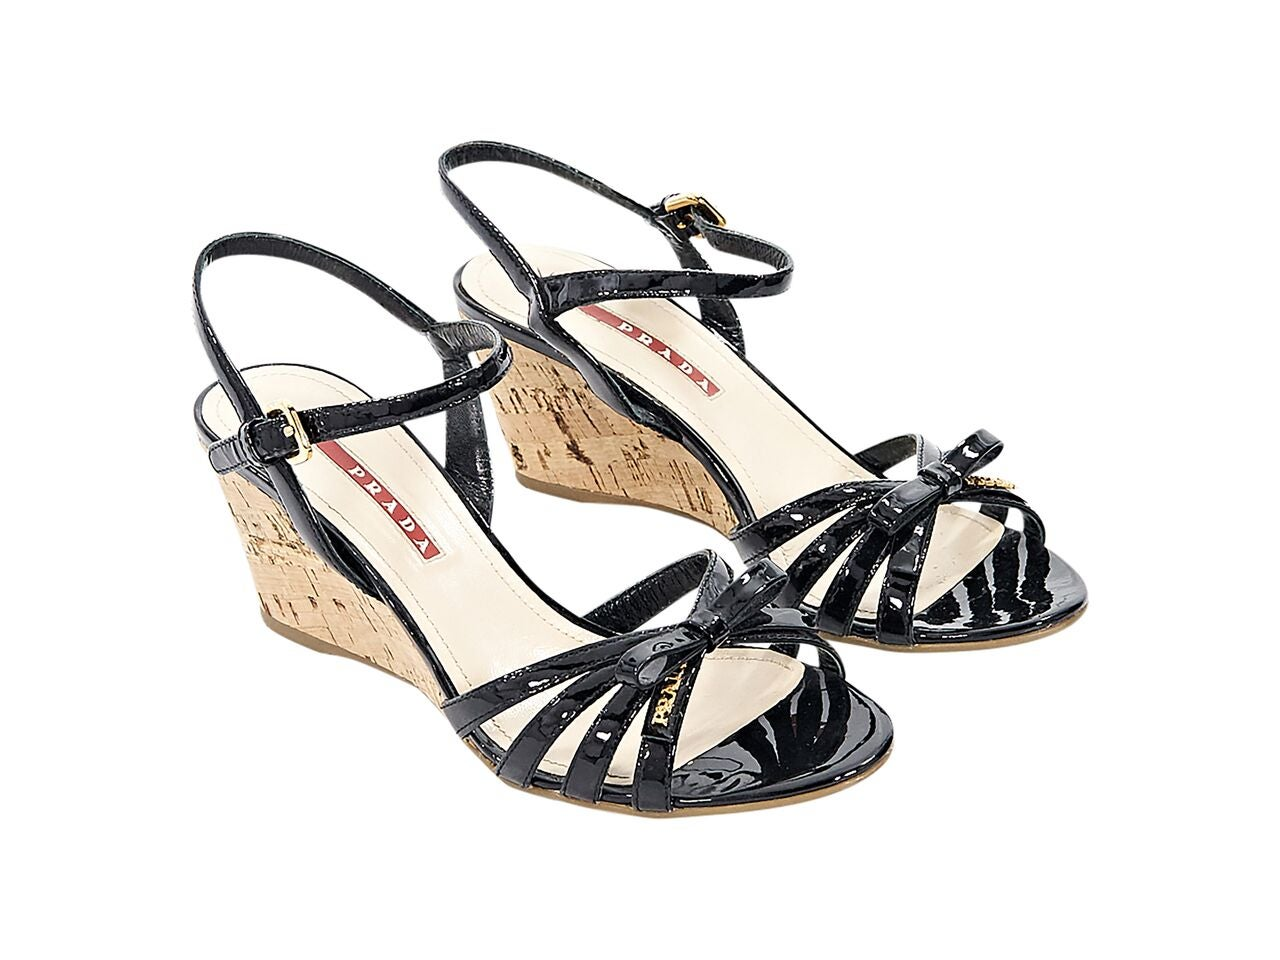 acd3c5afb82a Black Prada Sport Patent Leather Wedge Sandals For Sale at 1stdibs